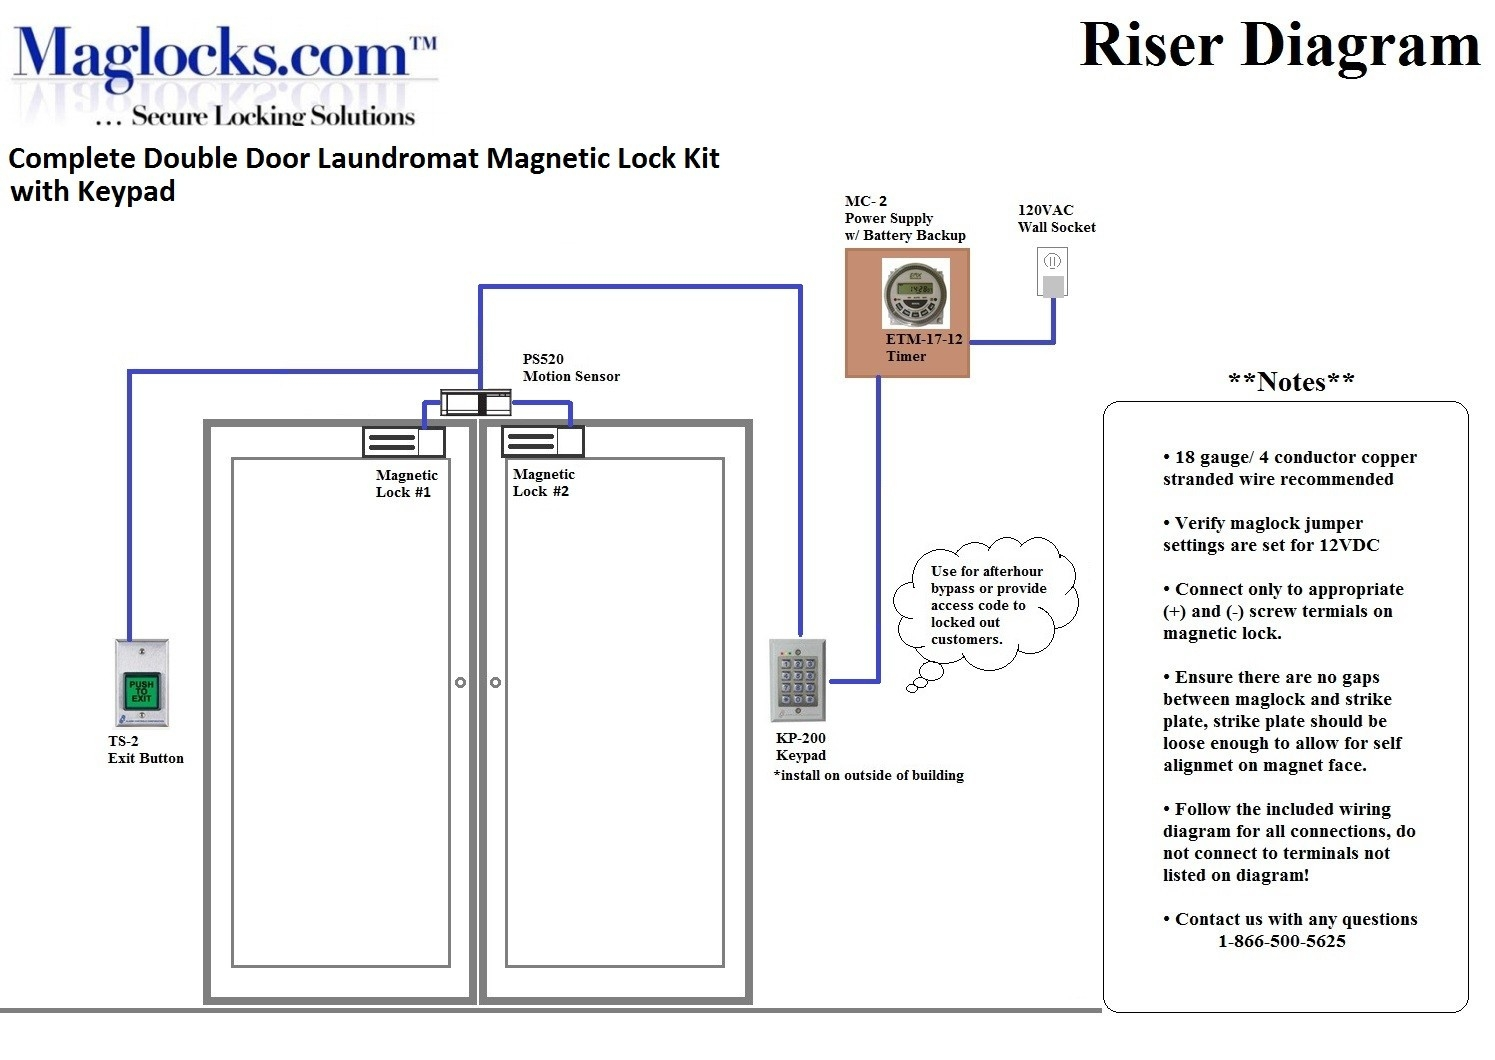 door access control wiring diagram magnetic door contact wiring diagram | free wiring diagram red cloud access control wiring diagram #11